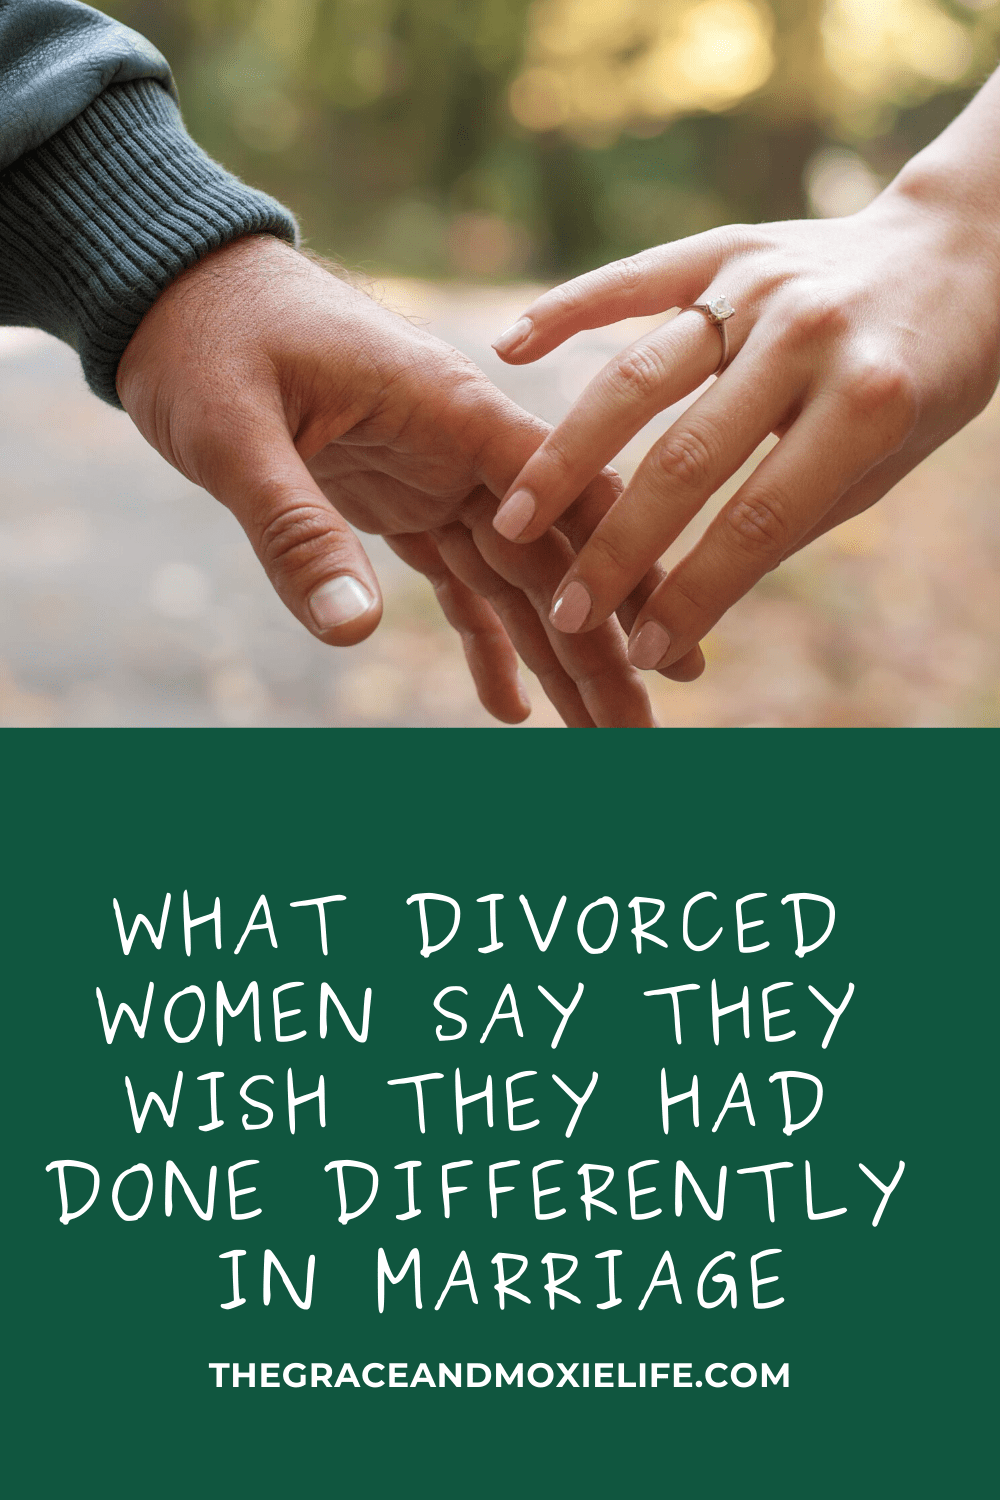 What Divorced Women Say They Wish They Had Done Differently In Marriage | The Grace and Moxie Life